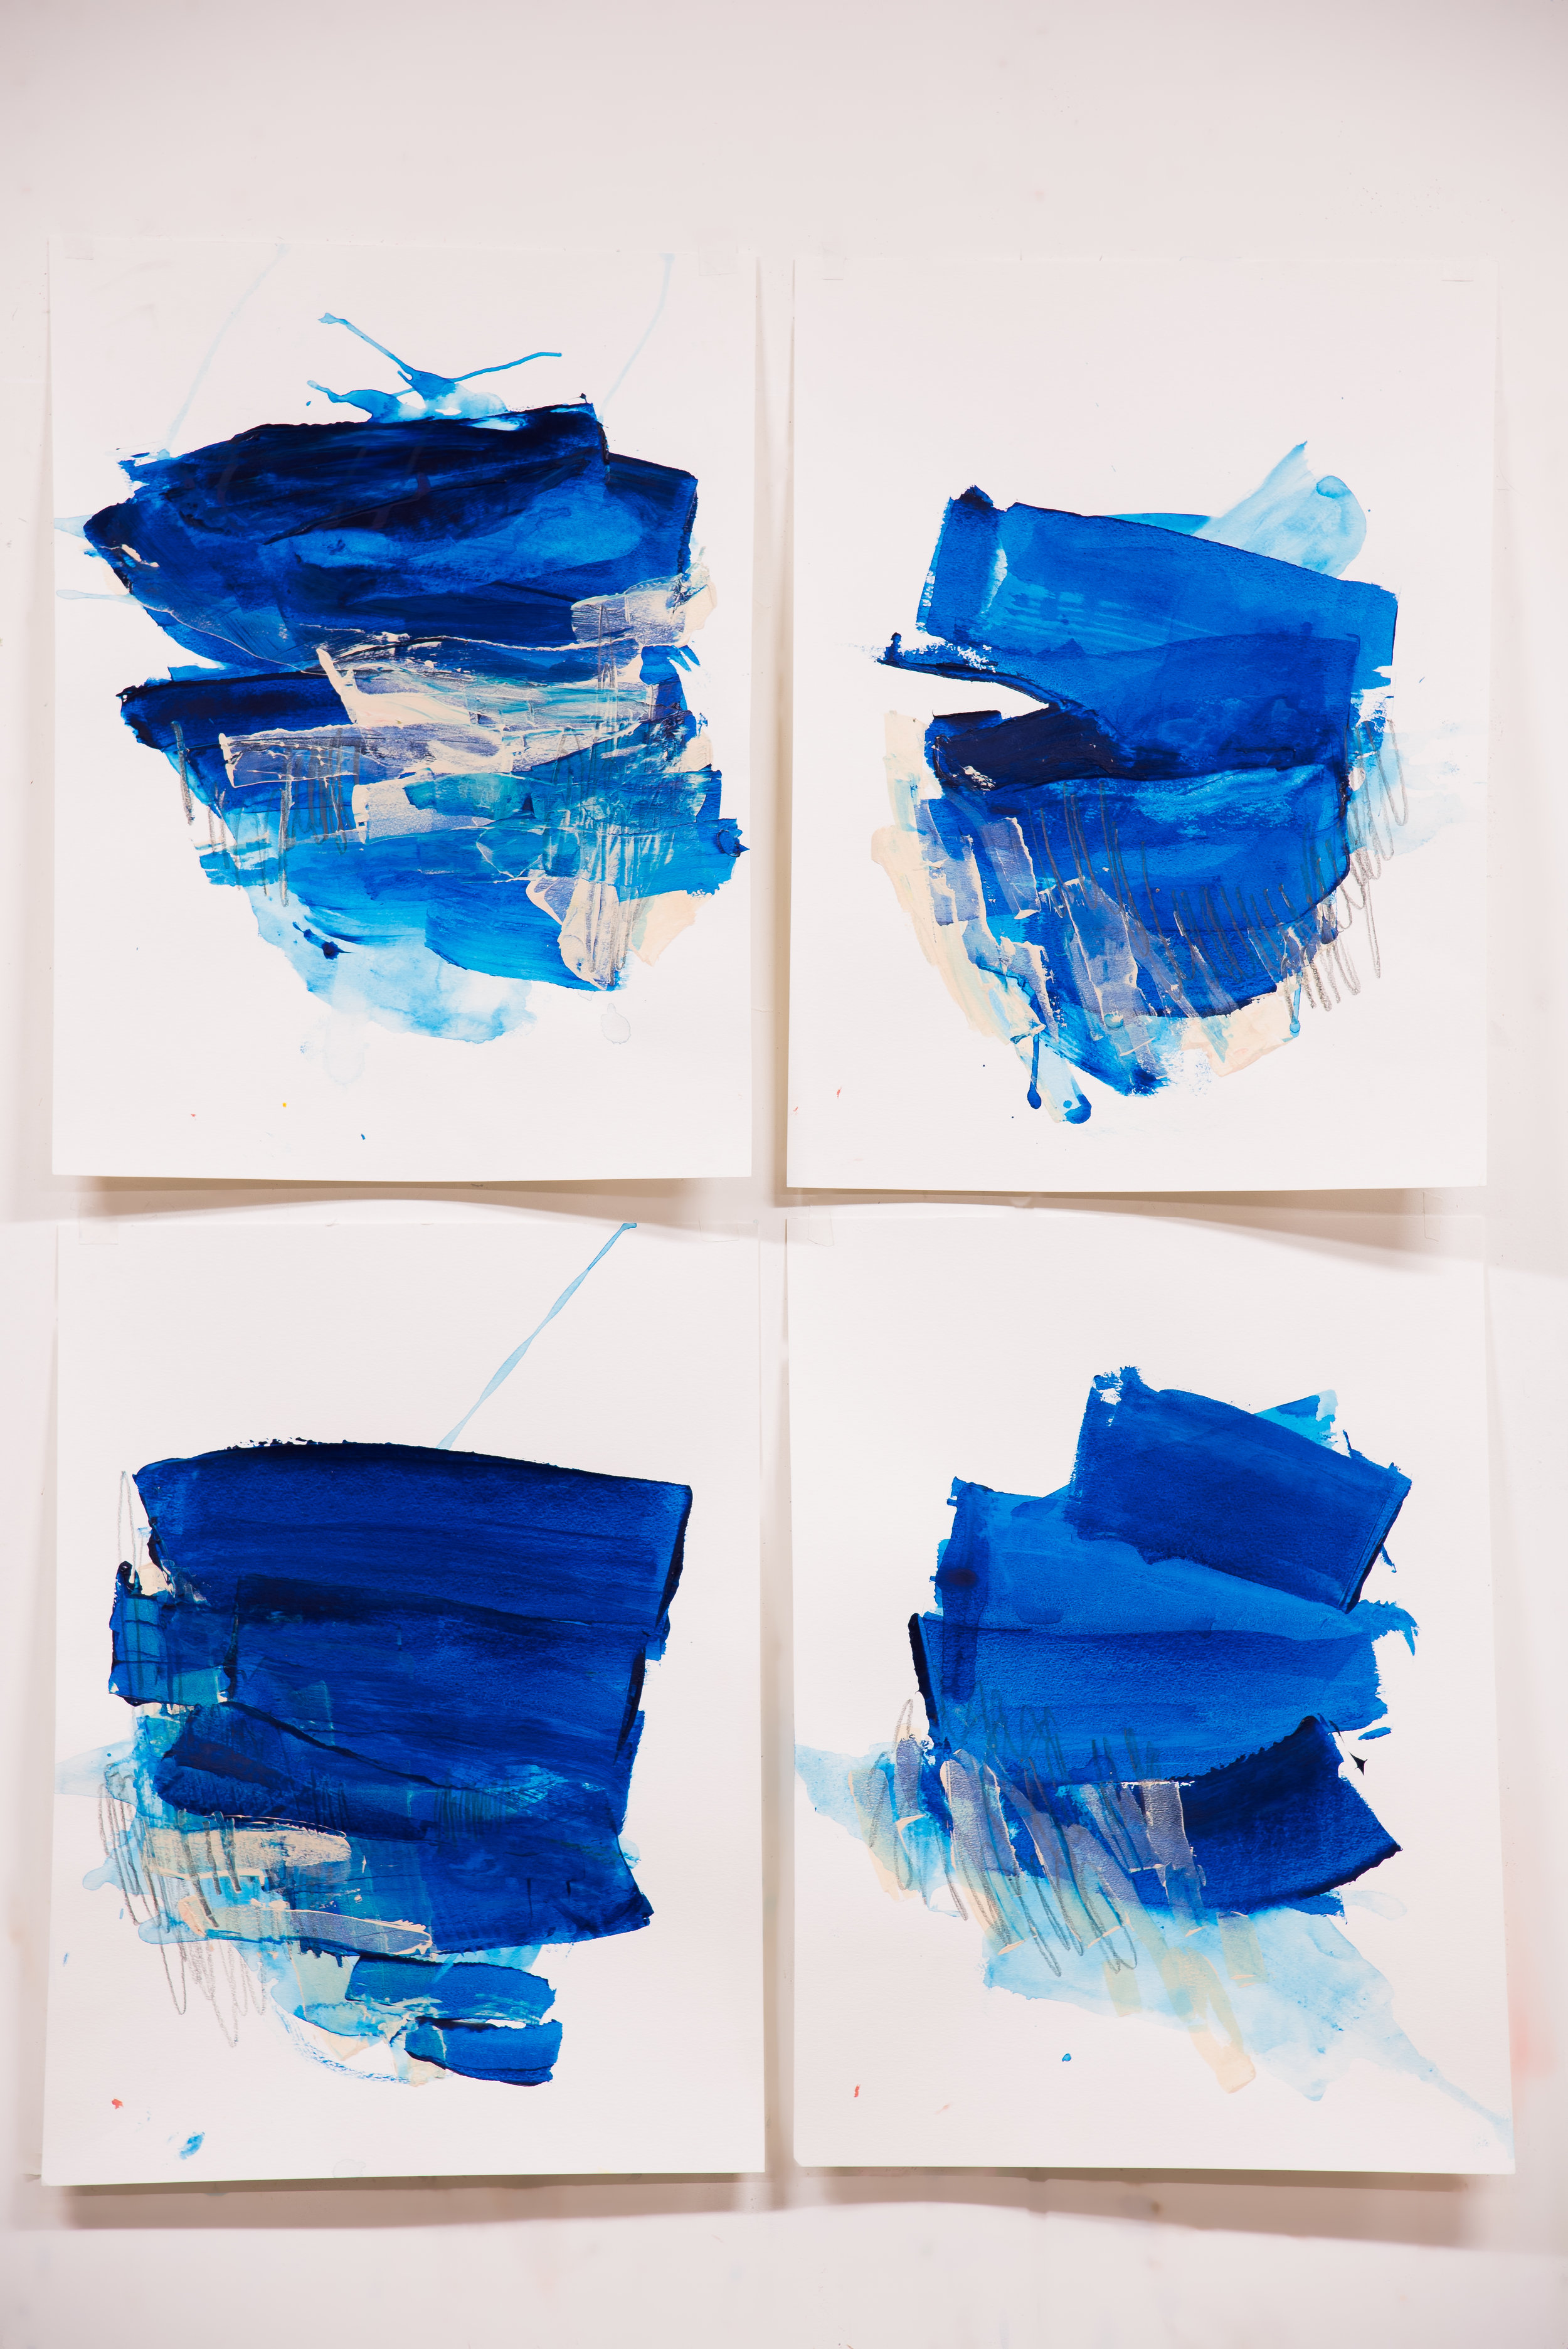 """Buoyant #1-4 , 18""""x24"""" each, acrylic + graphite on paper, 2018, #4 SOLD, #1-3 available"""